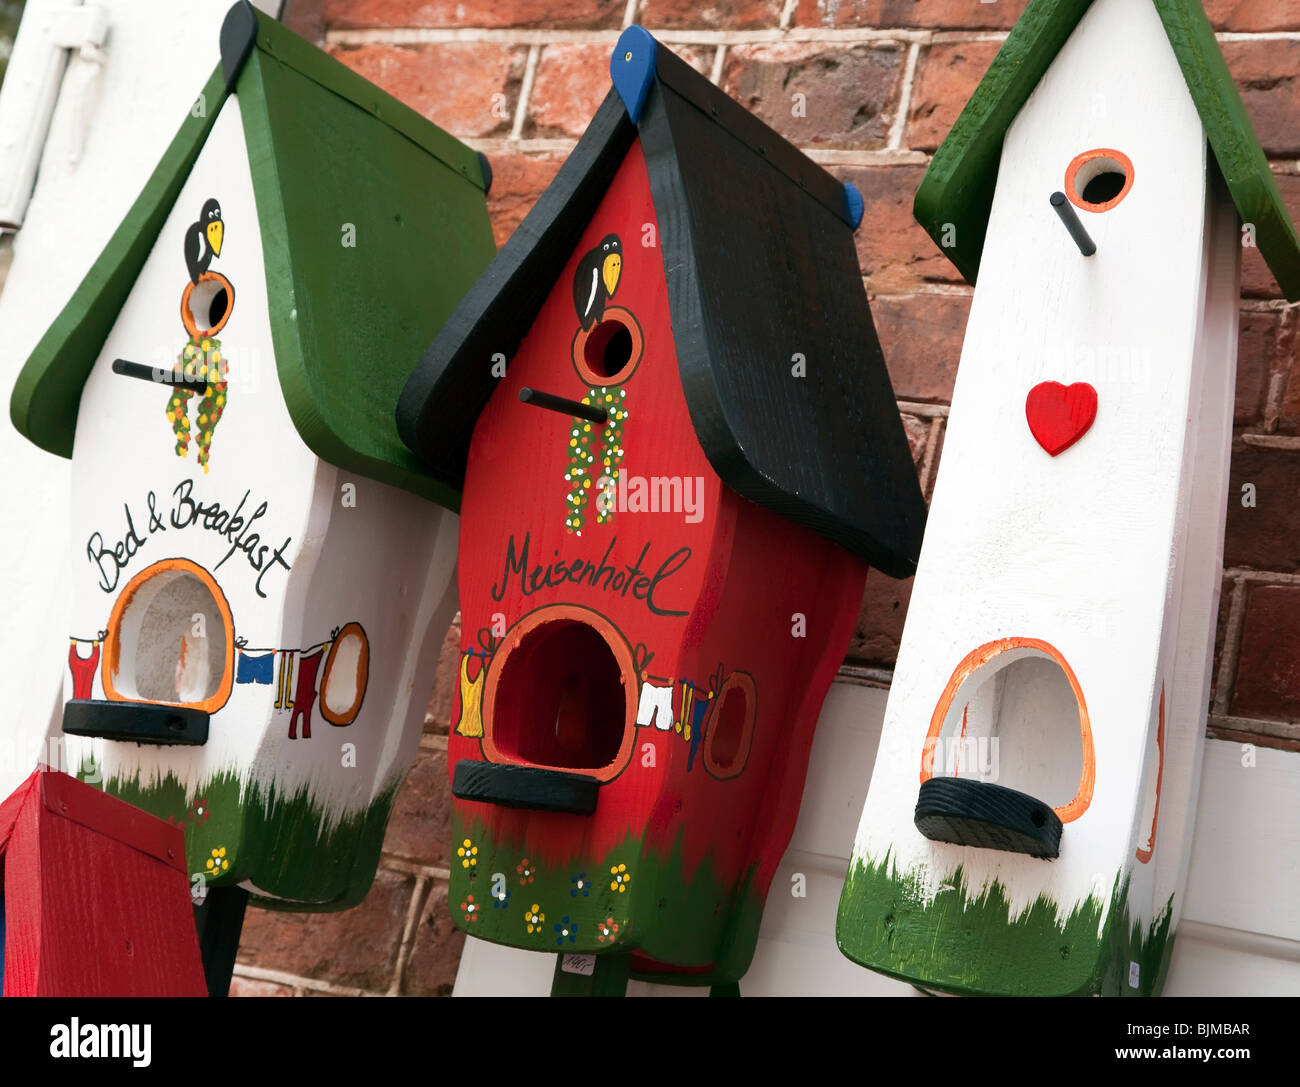 painted birdhouses stockfotos painted birdhouses bilder alamy. Black Bedroom Furniture Sets. Home Design Ideas